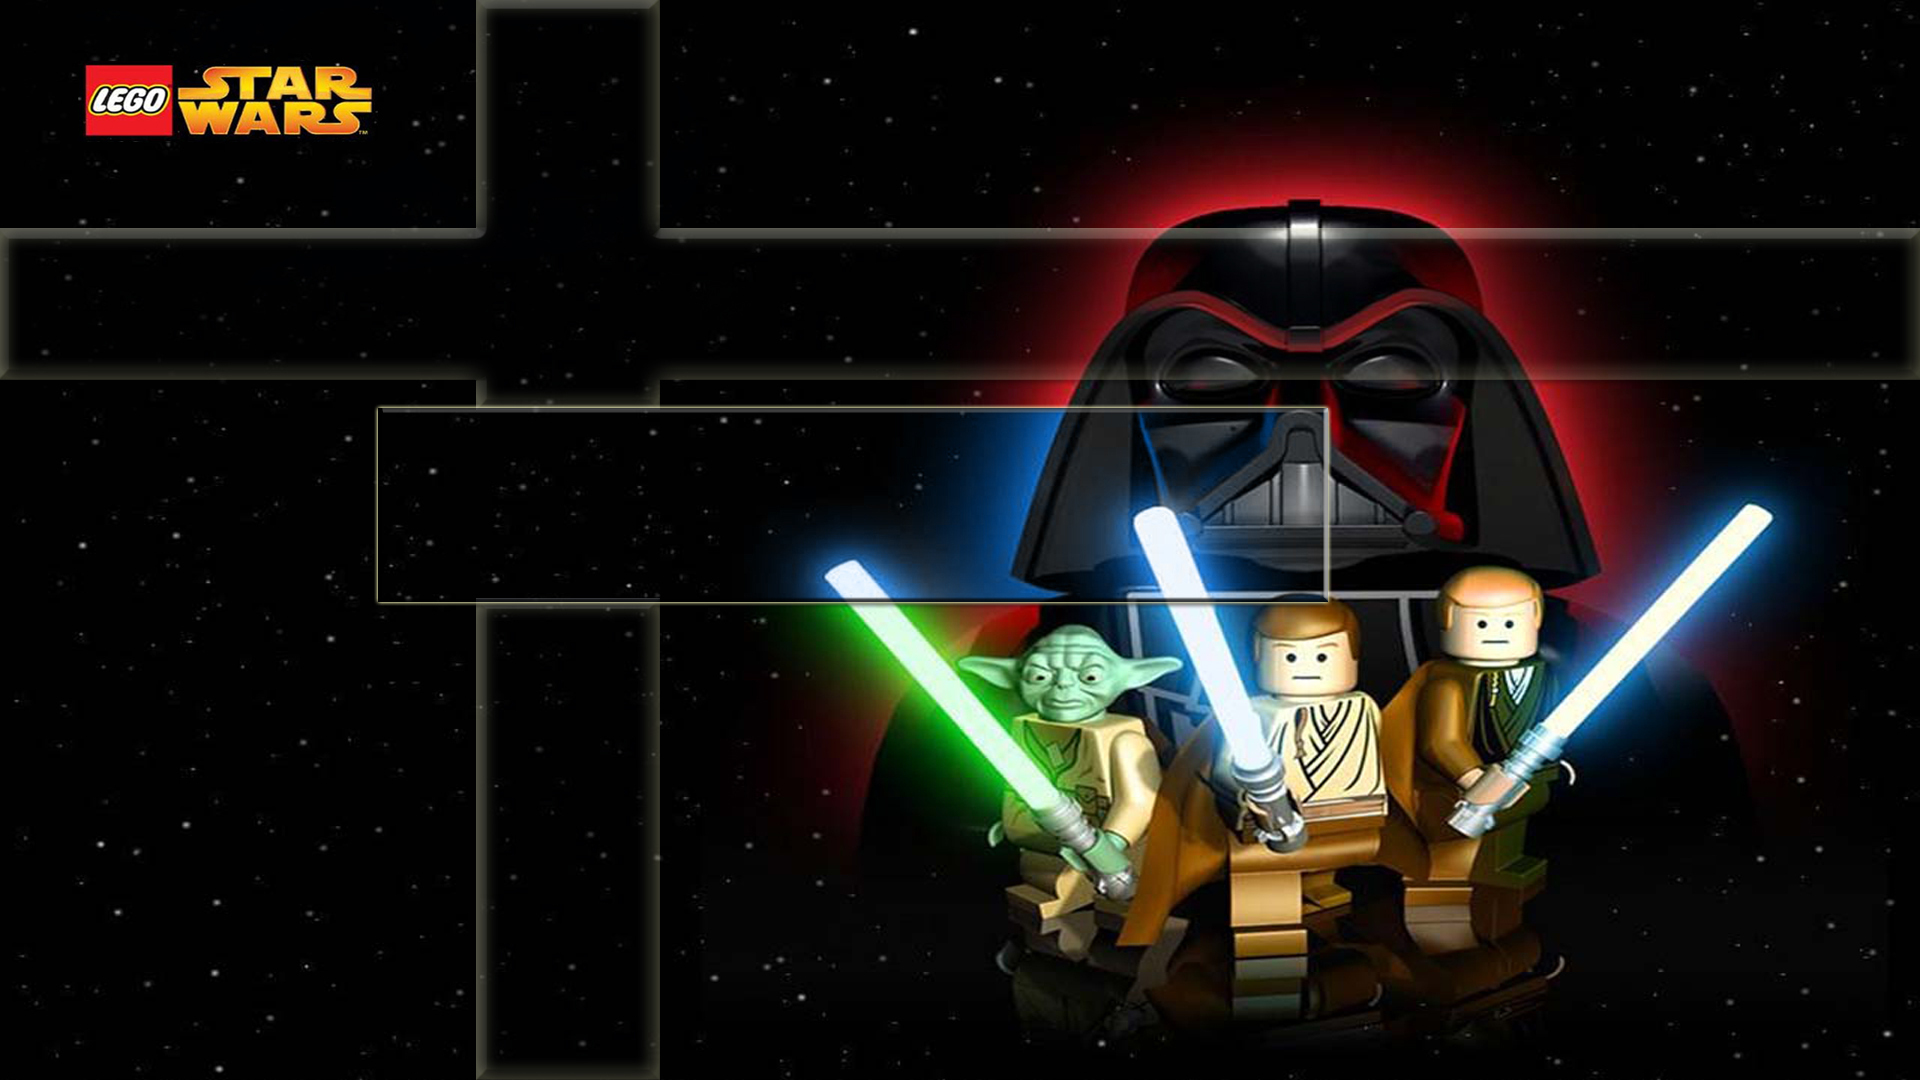 star wars clones images star wars clones hd wallpaper and